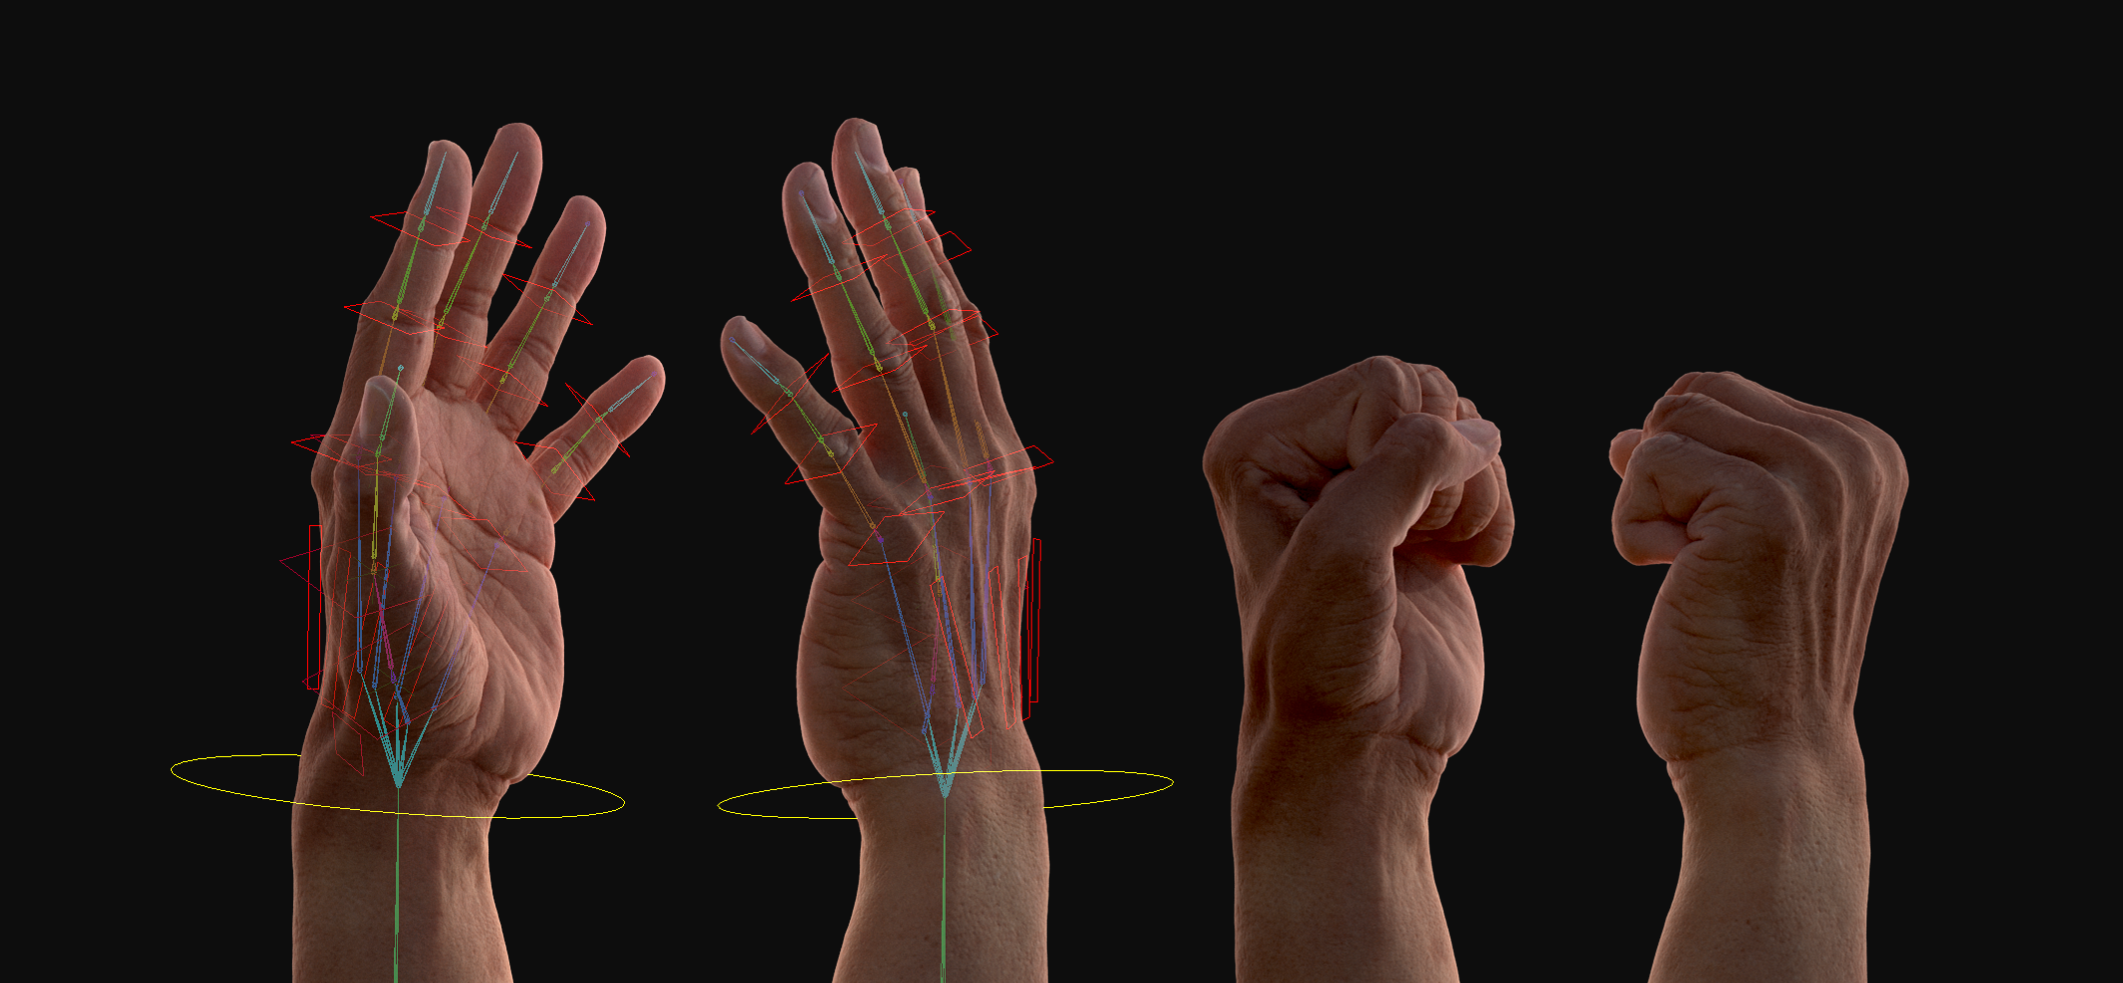 Parametric hand model / Offline and real-time renderer support